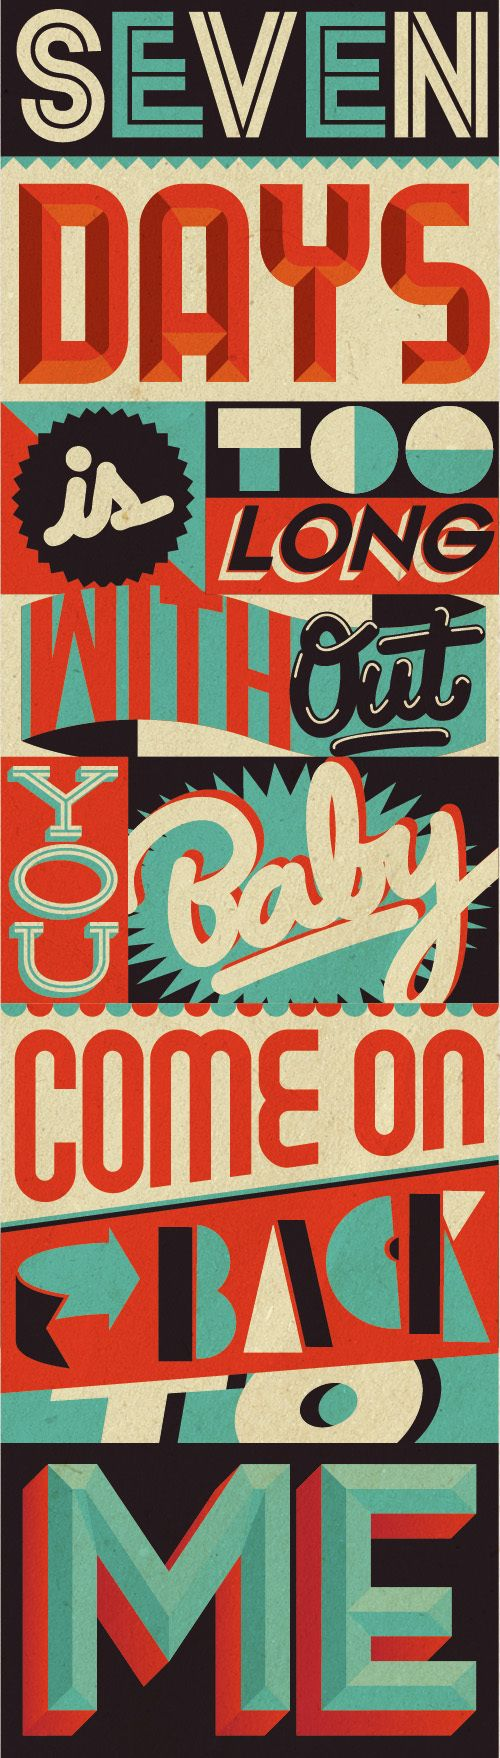 Love this vintage poster design by Bevlak via @inspiration_hut #typography #sevendaysistoolong #posterdesign